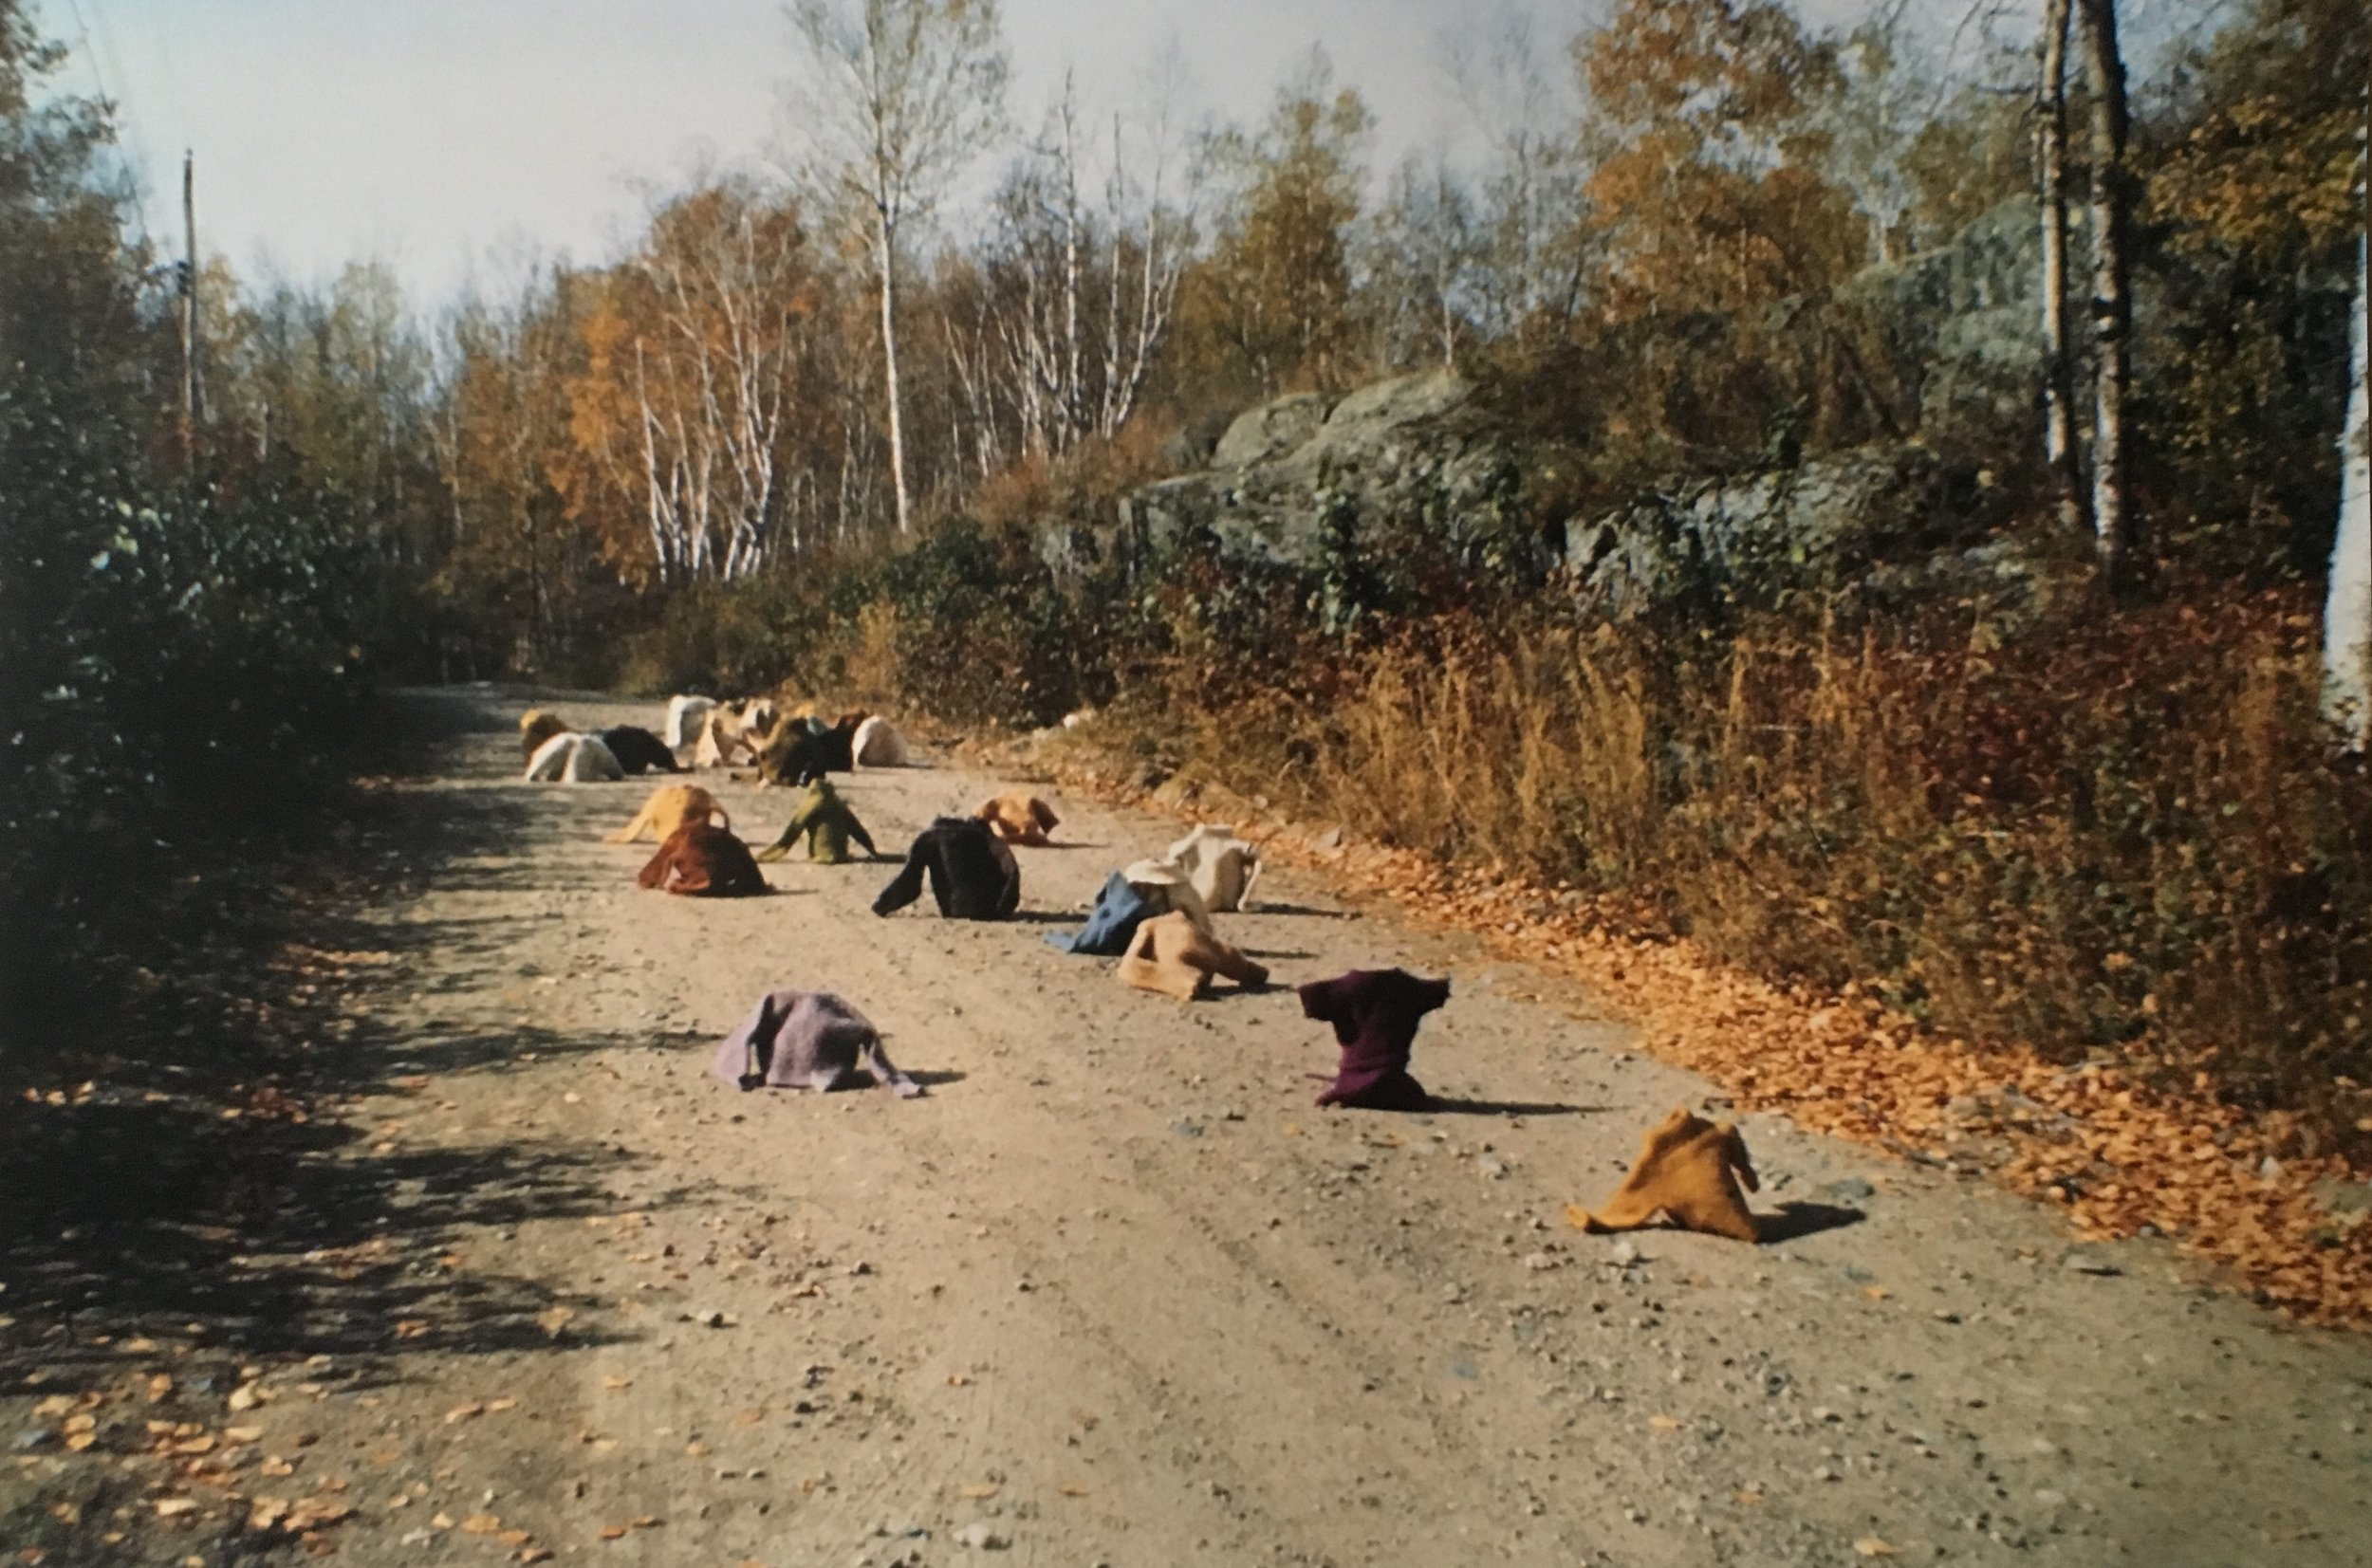 Aganetha Dyck + Peter Dyck  Clothing On the Road  1978 / 2018  Edition of 9 / 1 AP  Chromogenic Print  16 x 24 inches